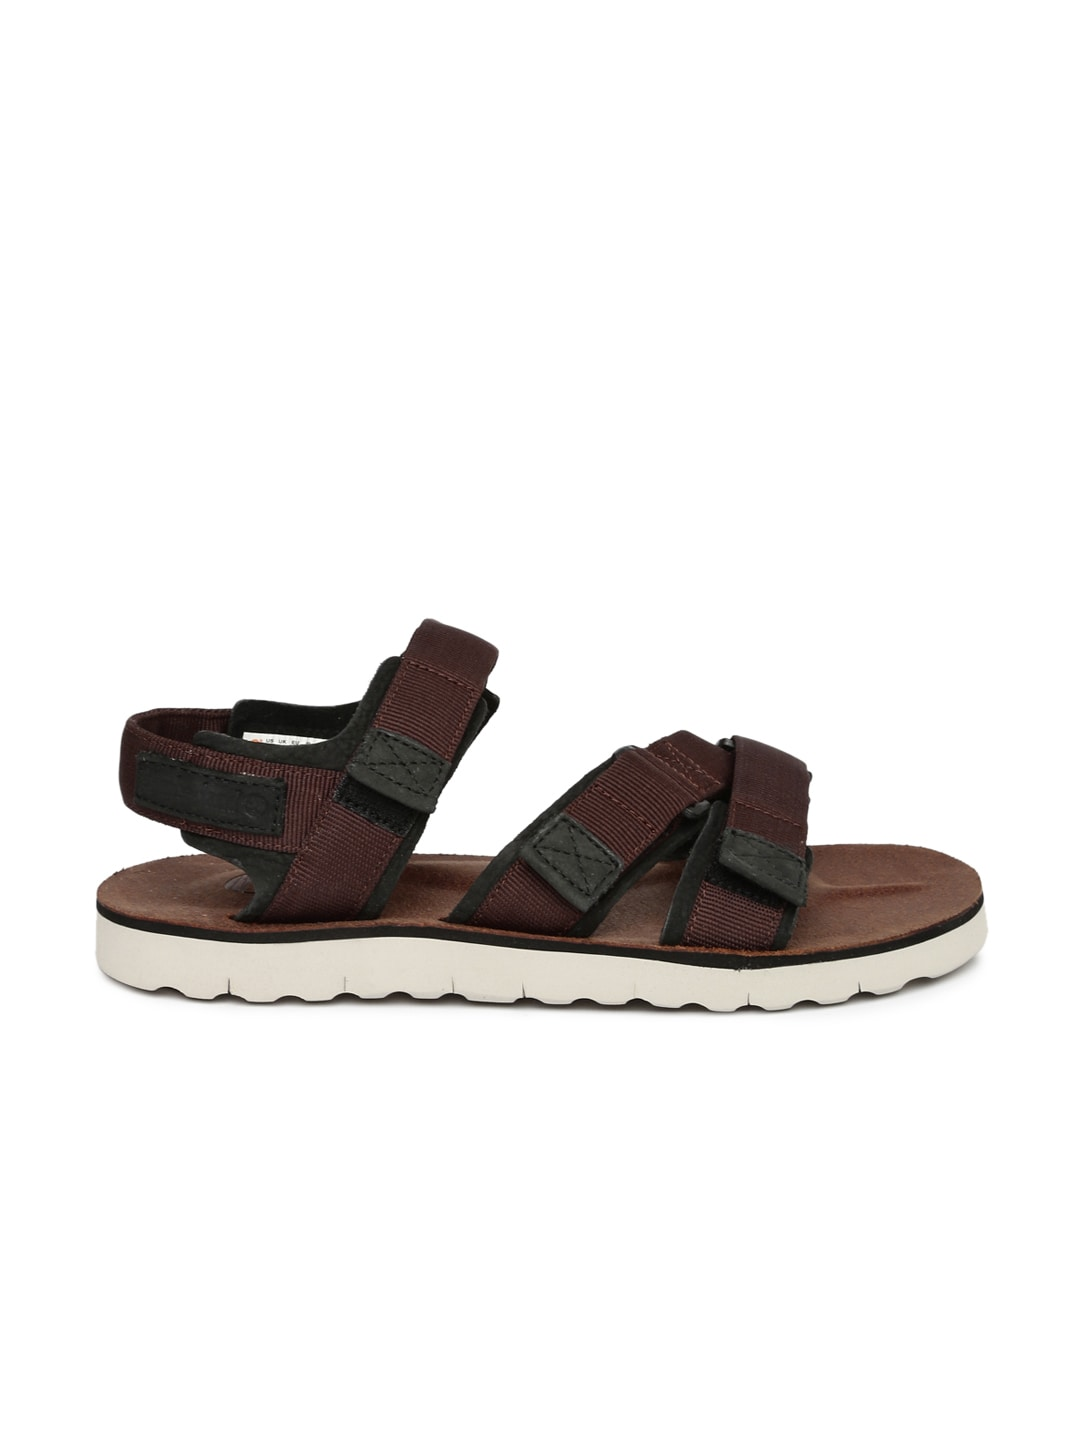 82e971b953 Timberland Sandals - Buy Timberland Sandals Online in India